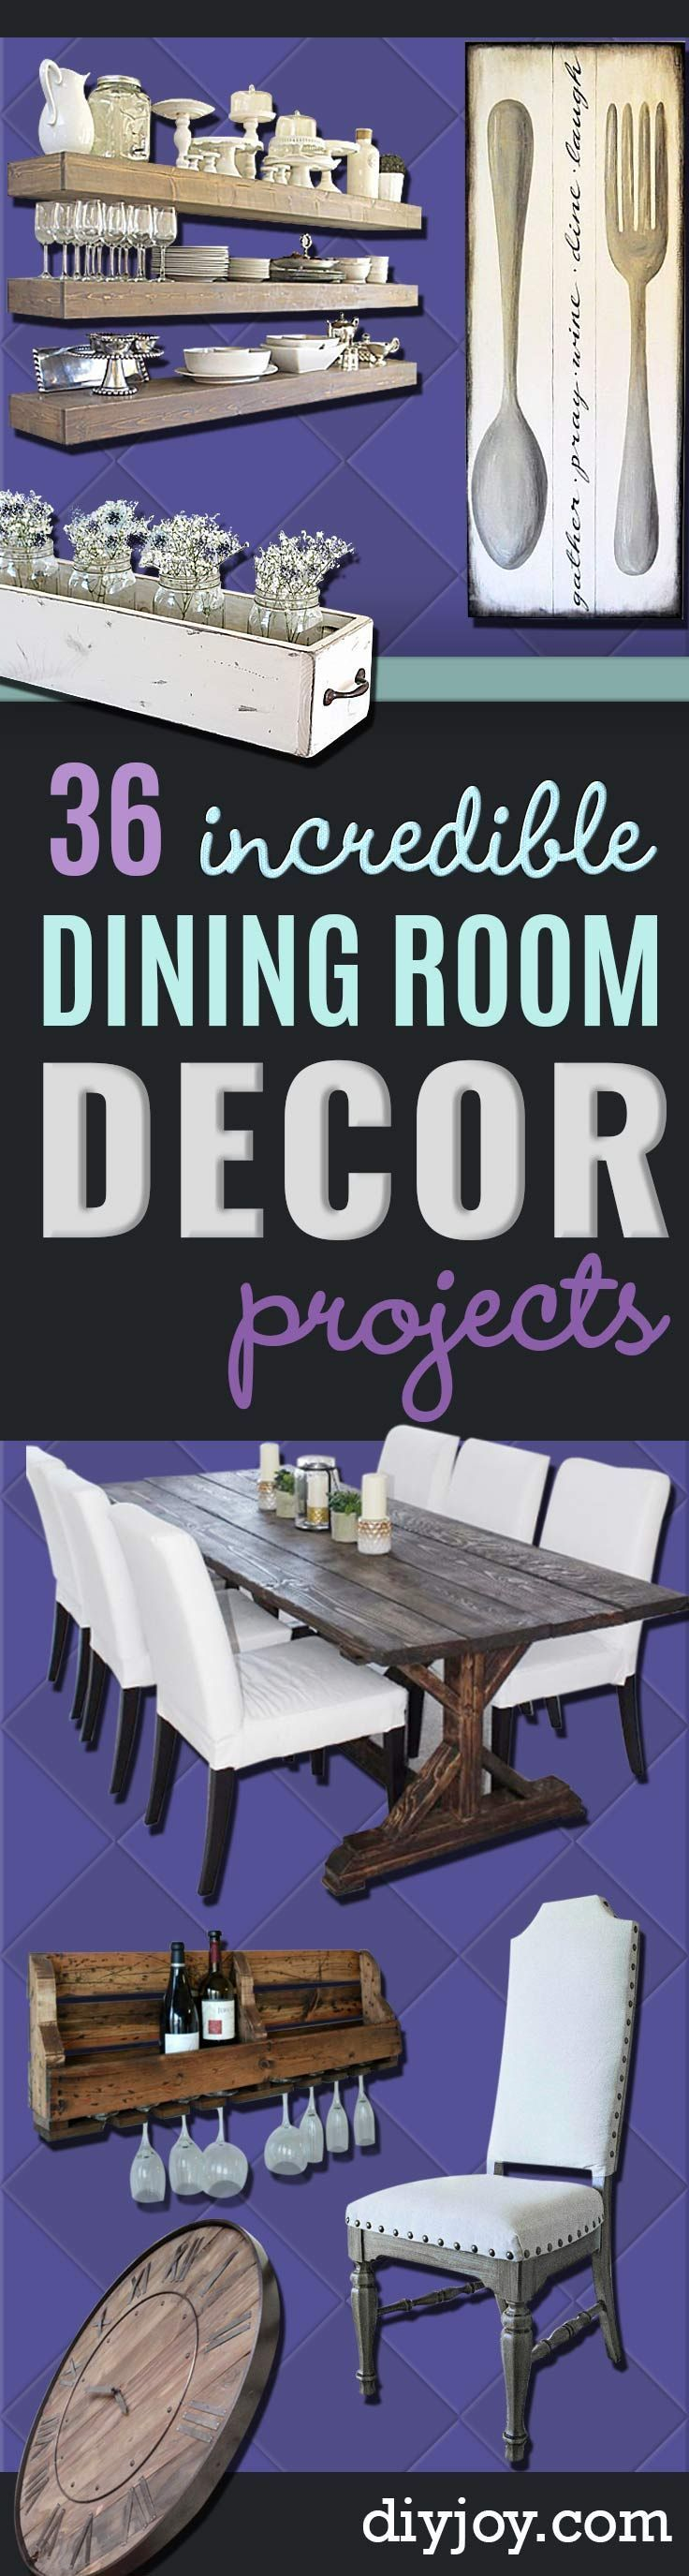 Diy Dining Room Decorating Ideas Image Review